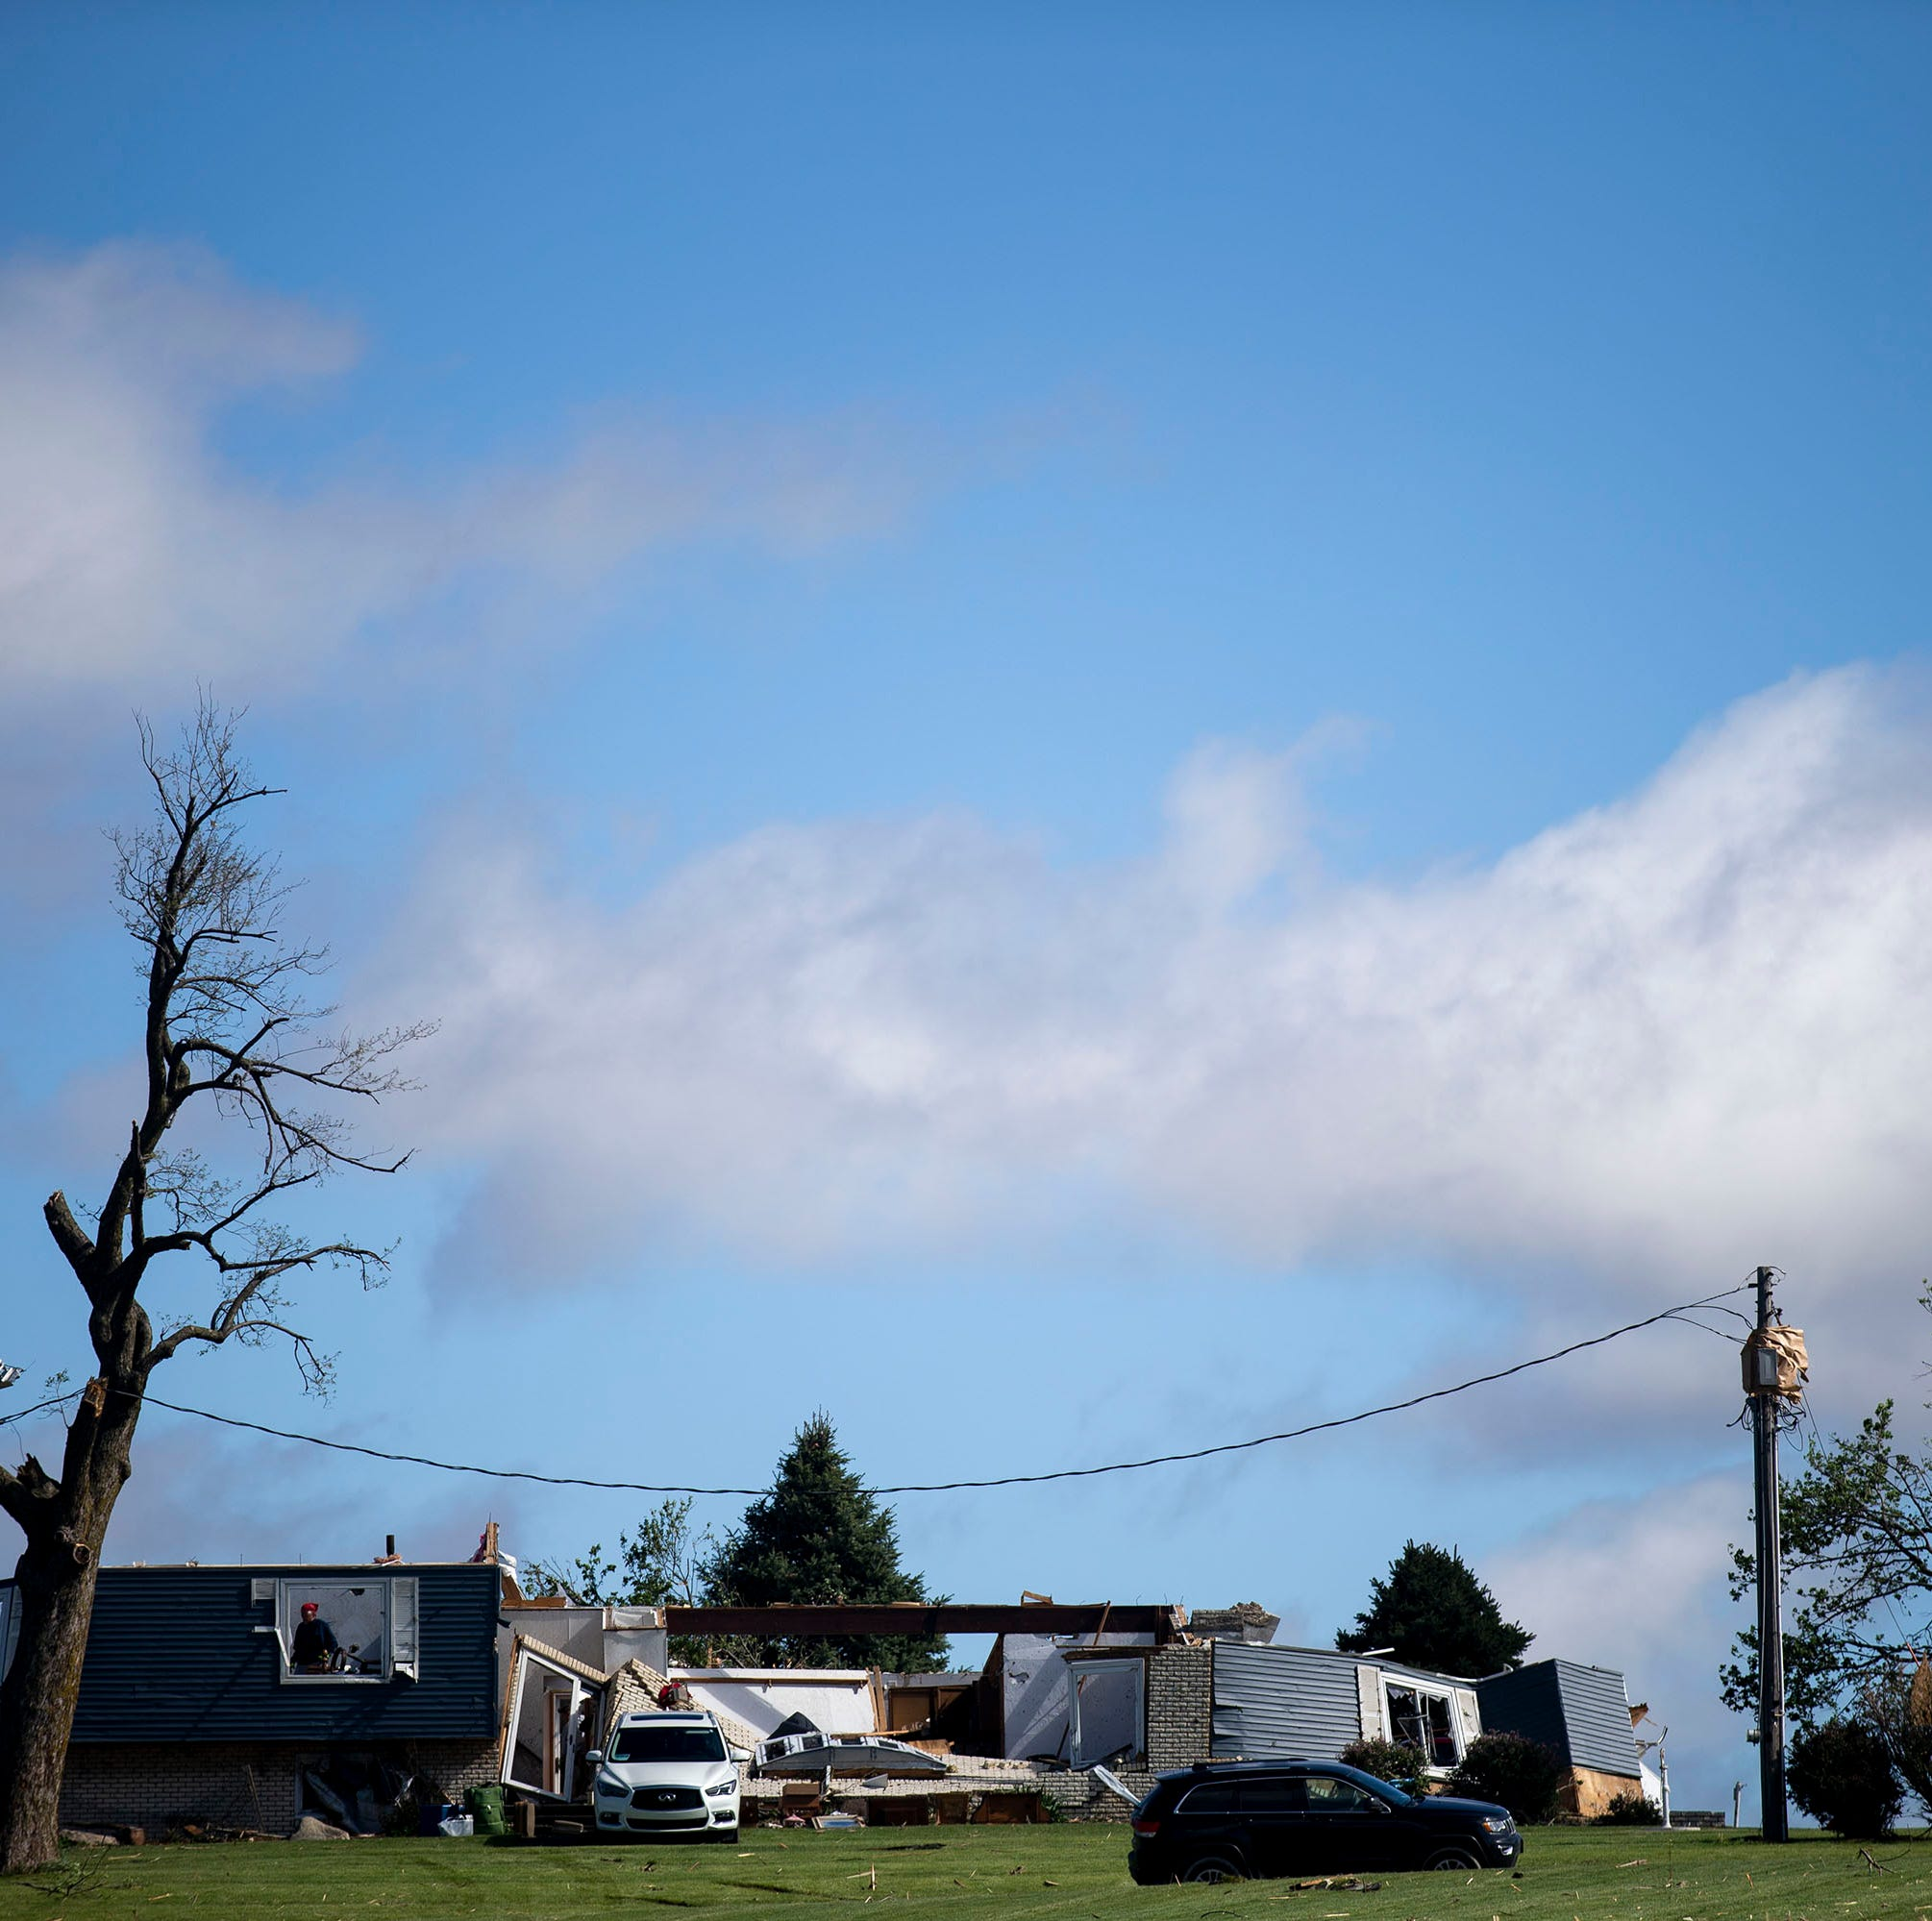 Surprise overnight tornado kills a farmer and leaves behind tales of terror in rural central Iowa